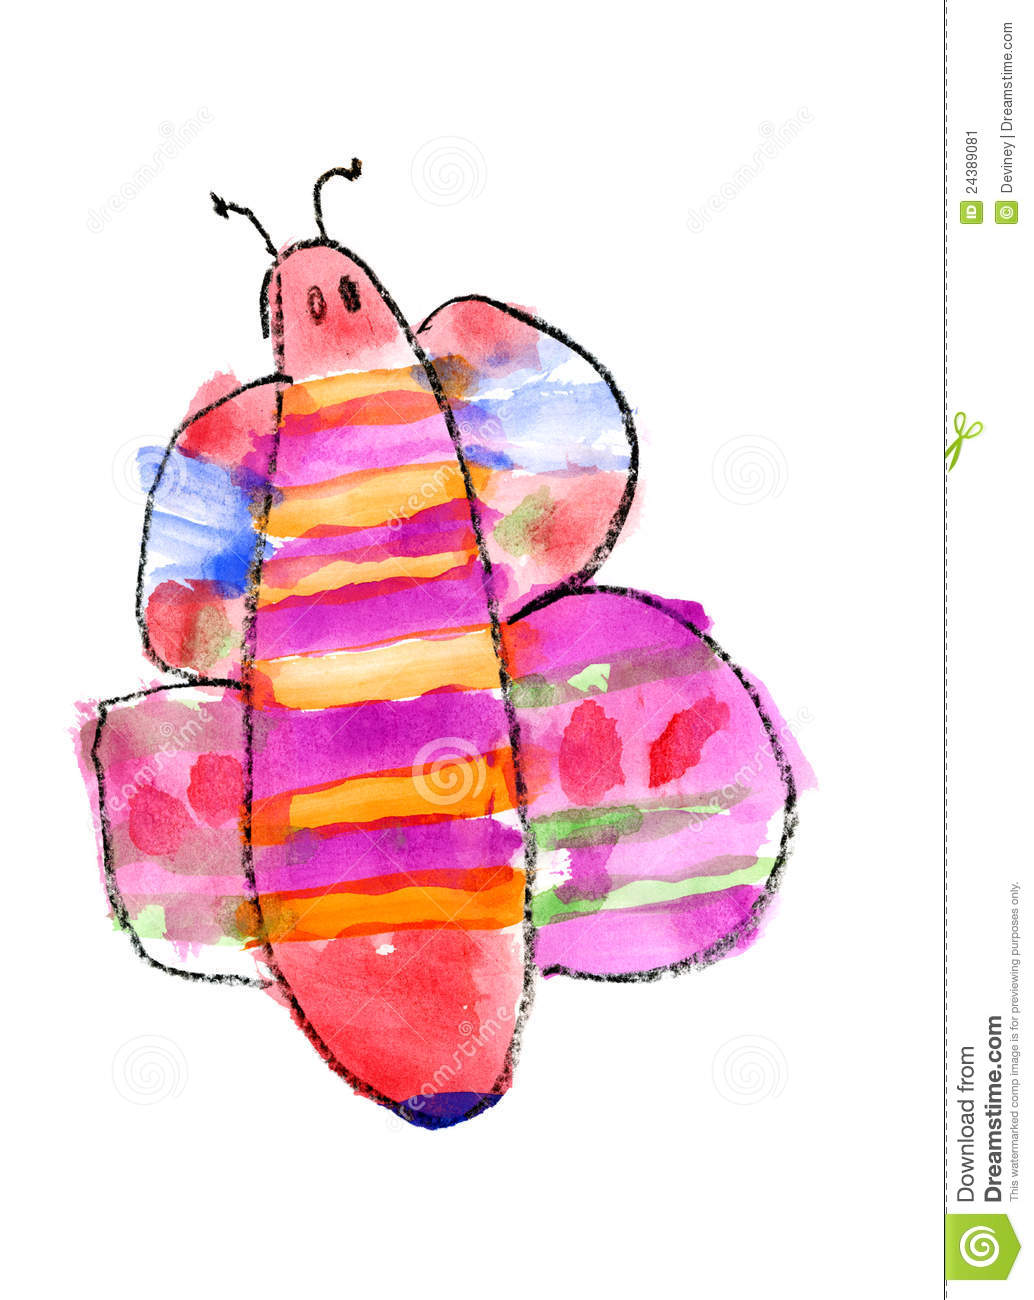 More similar stock images of ` Butterfly watercolor `